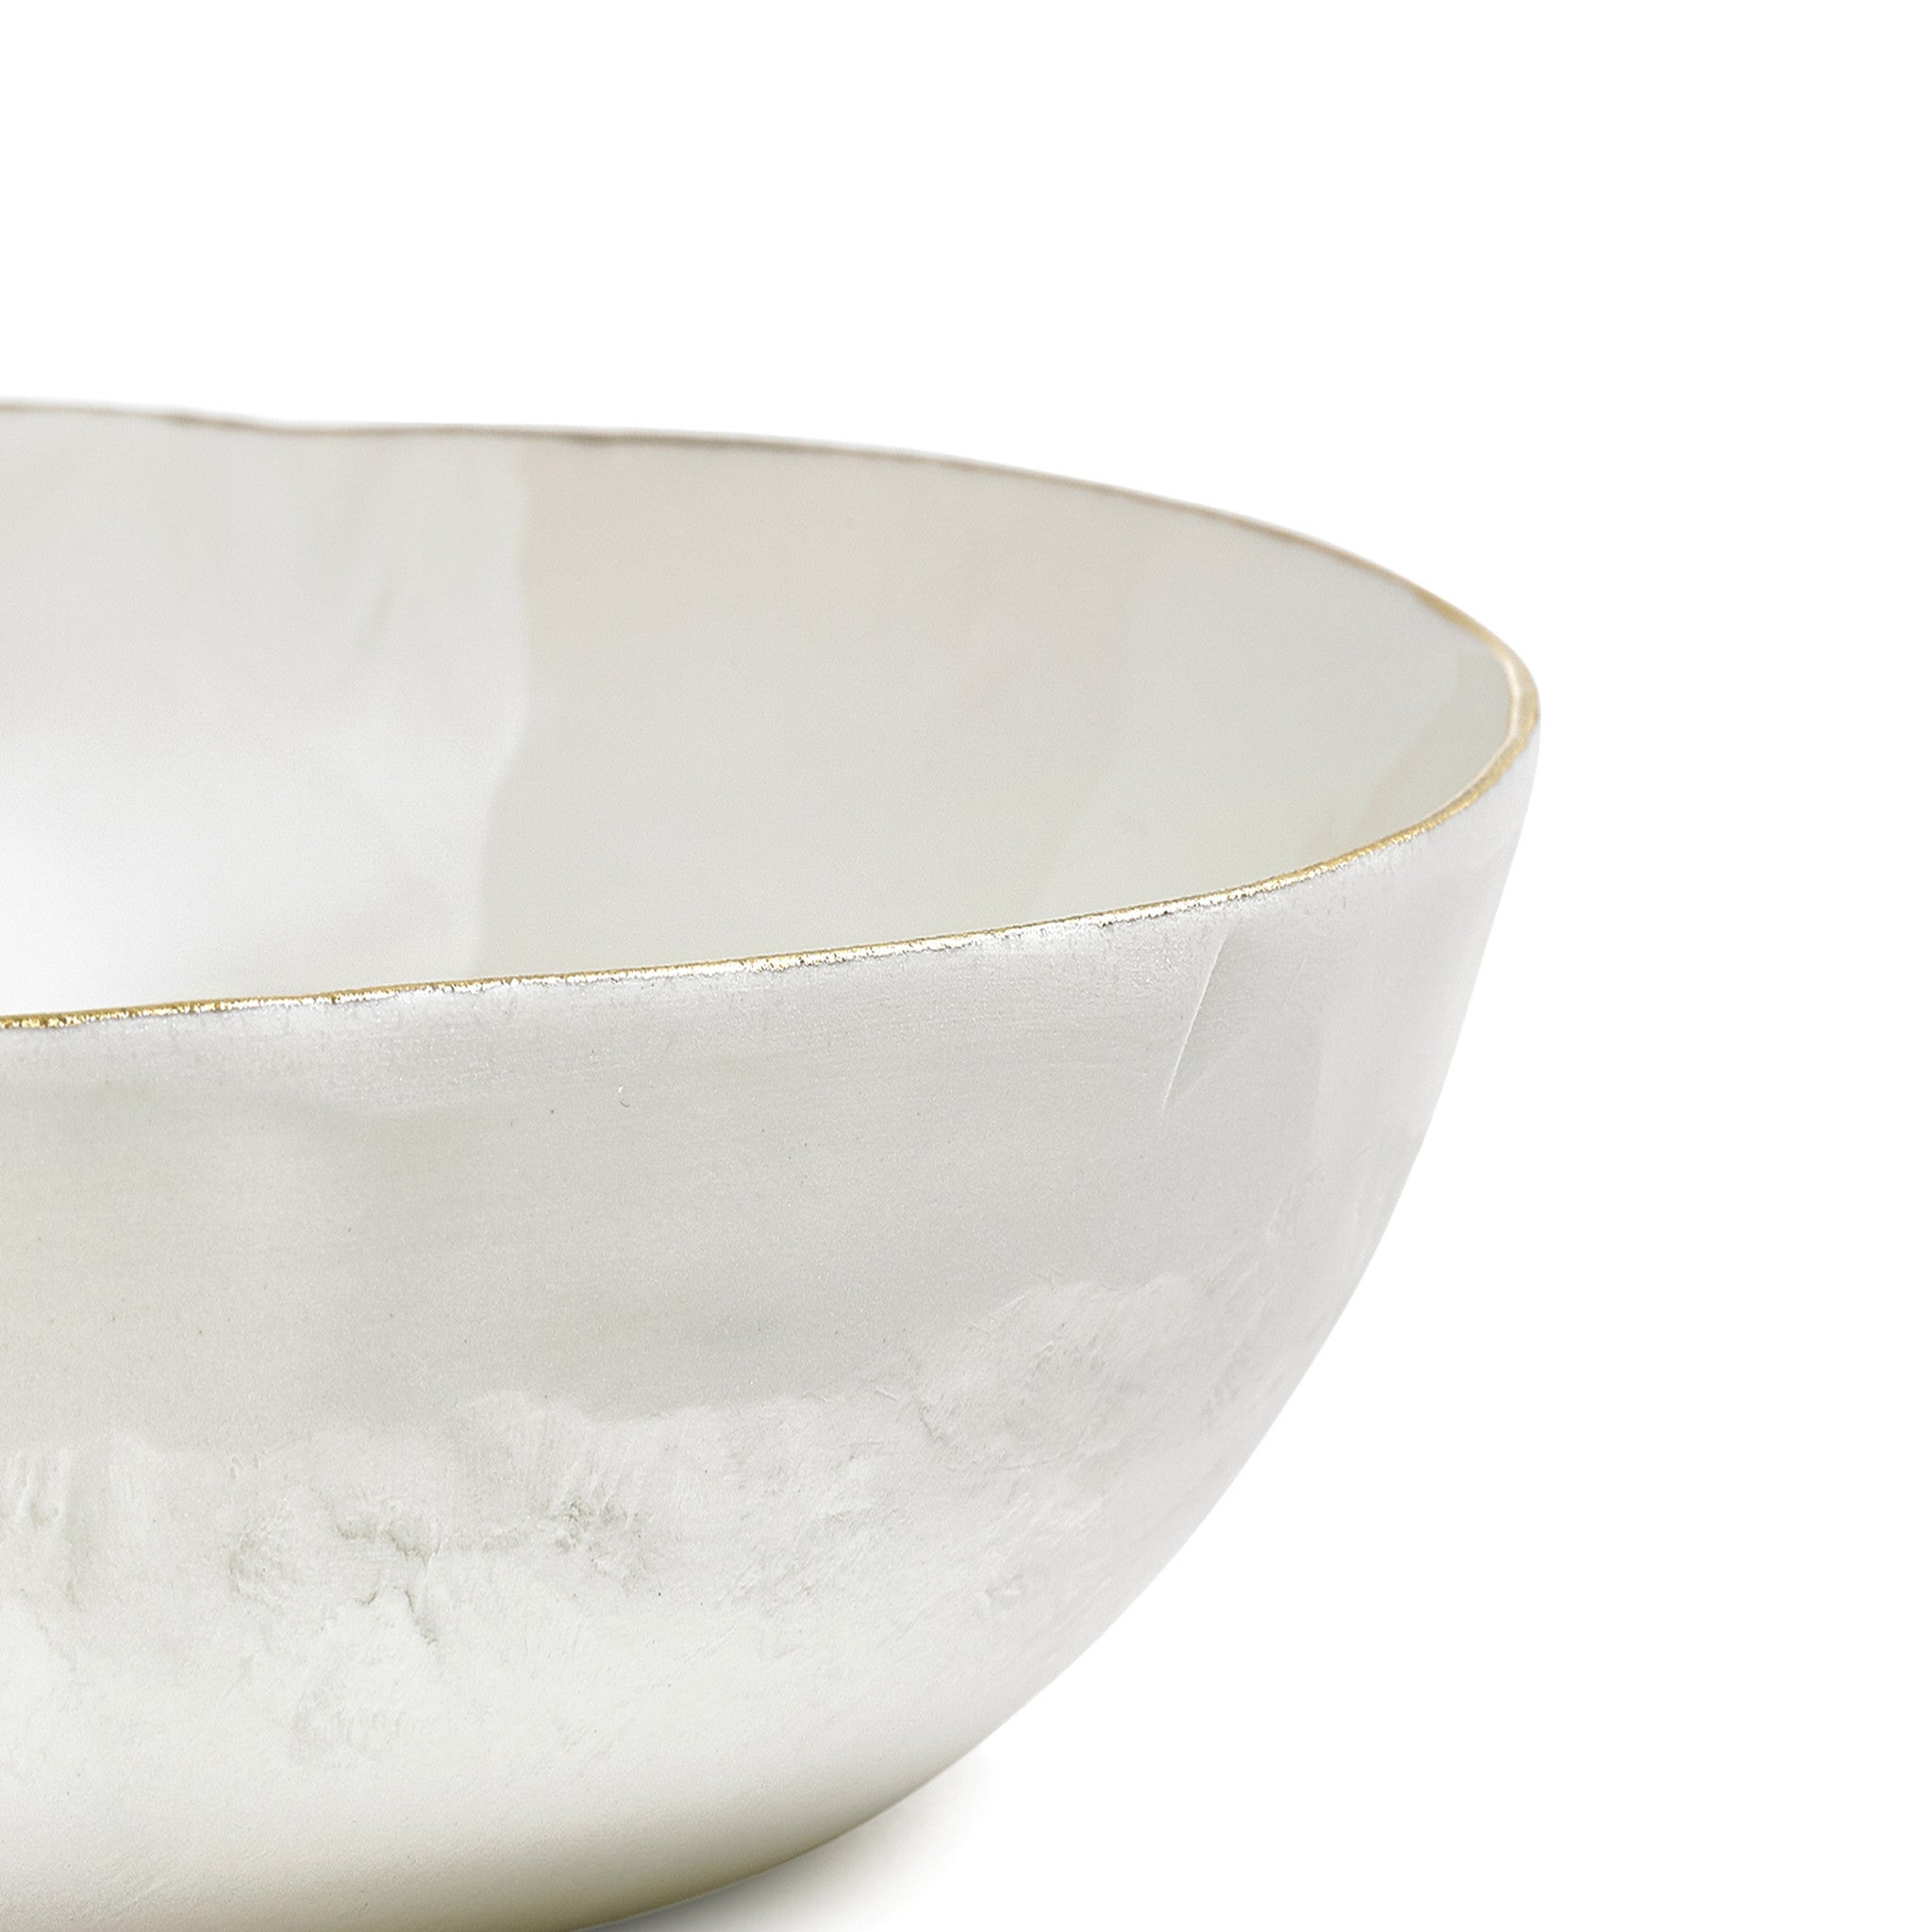 S&B Handmade 30cm Porcelain Medium Salad Bowl with Gold Rim